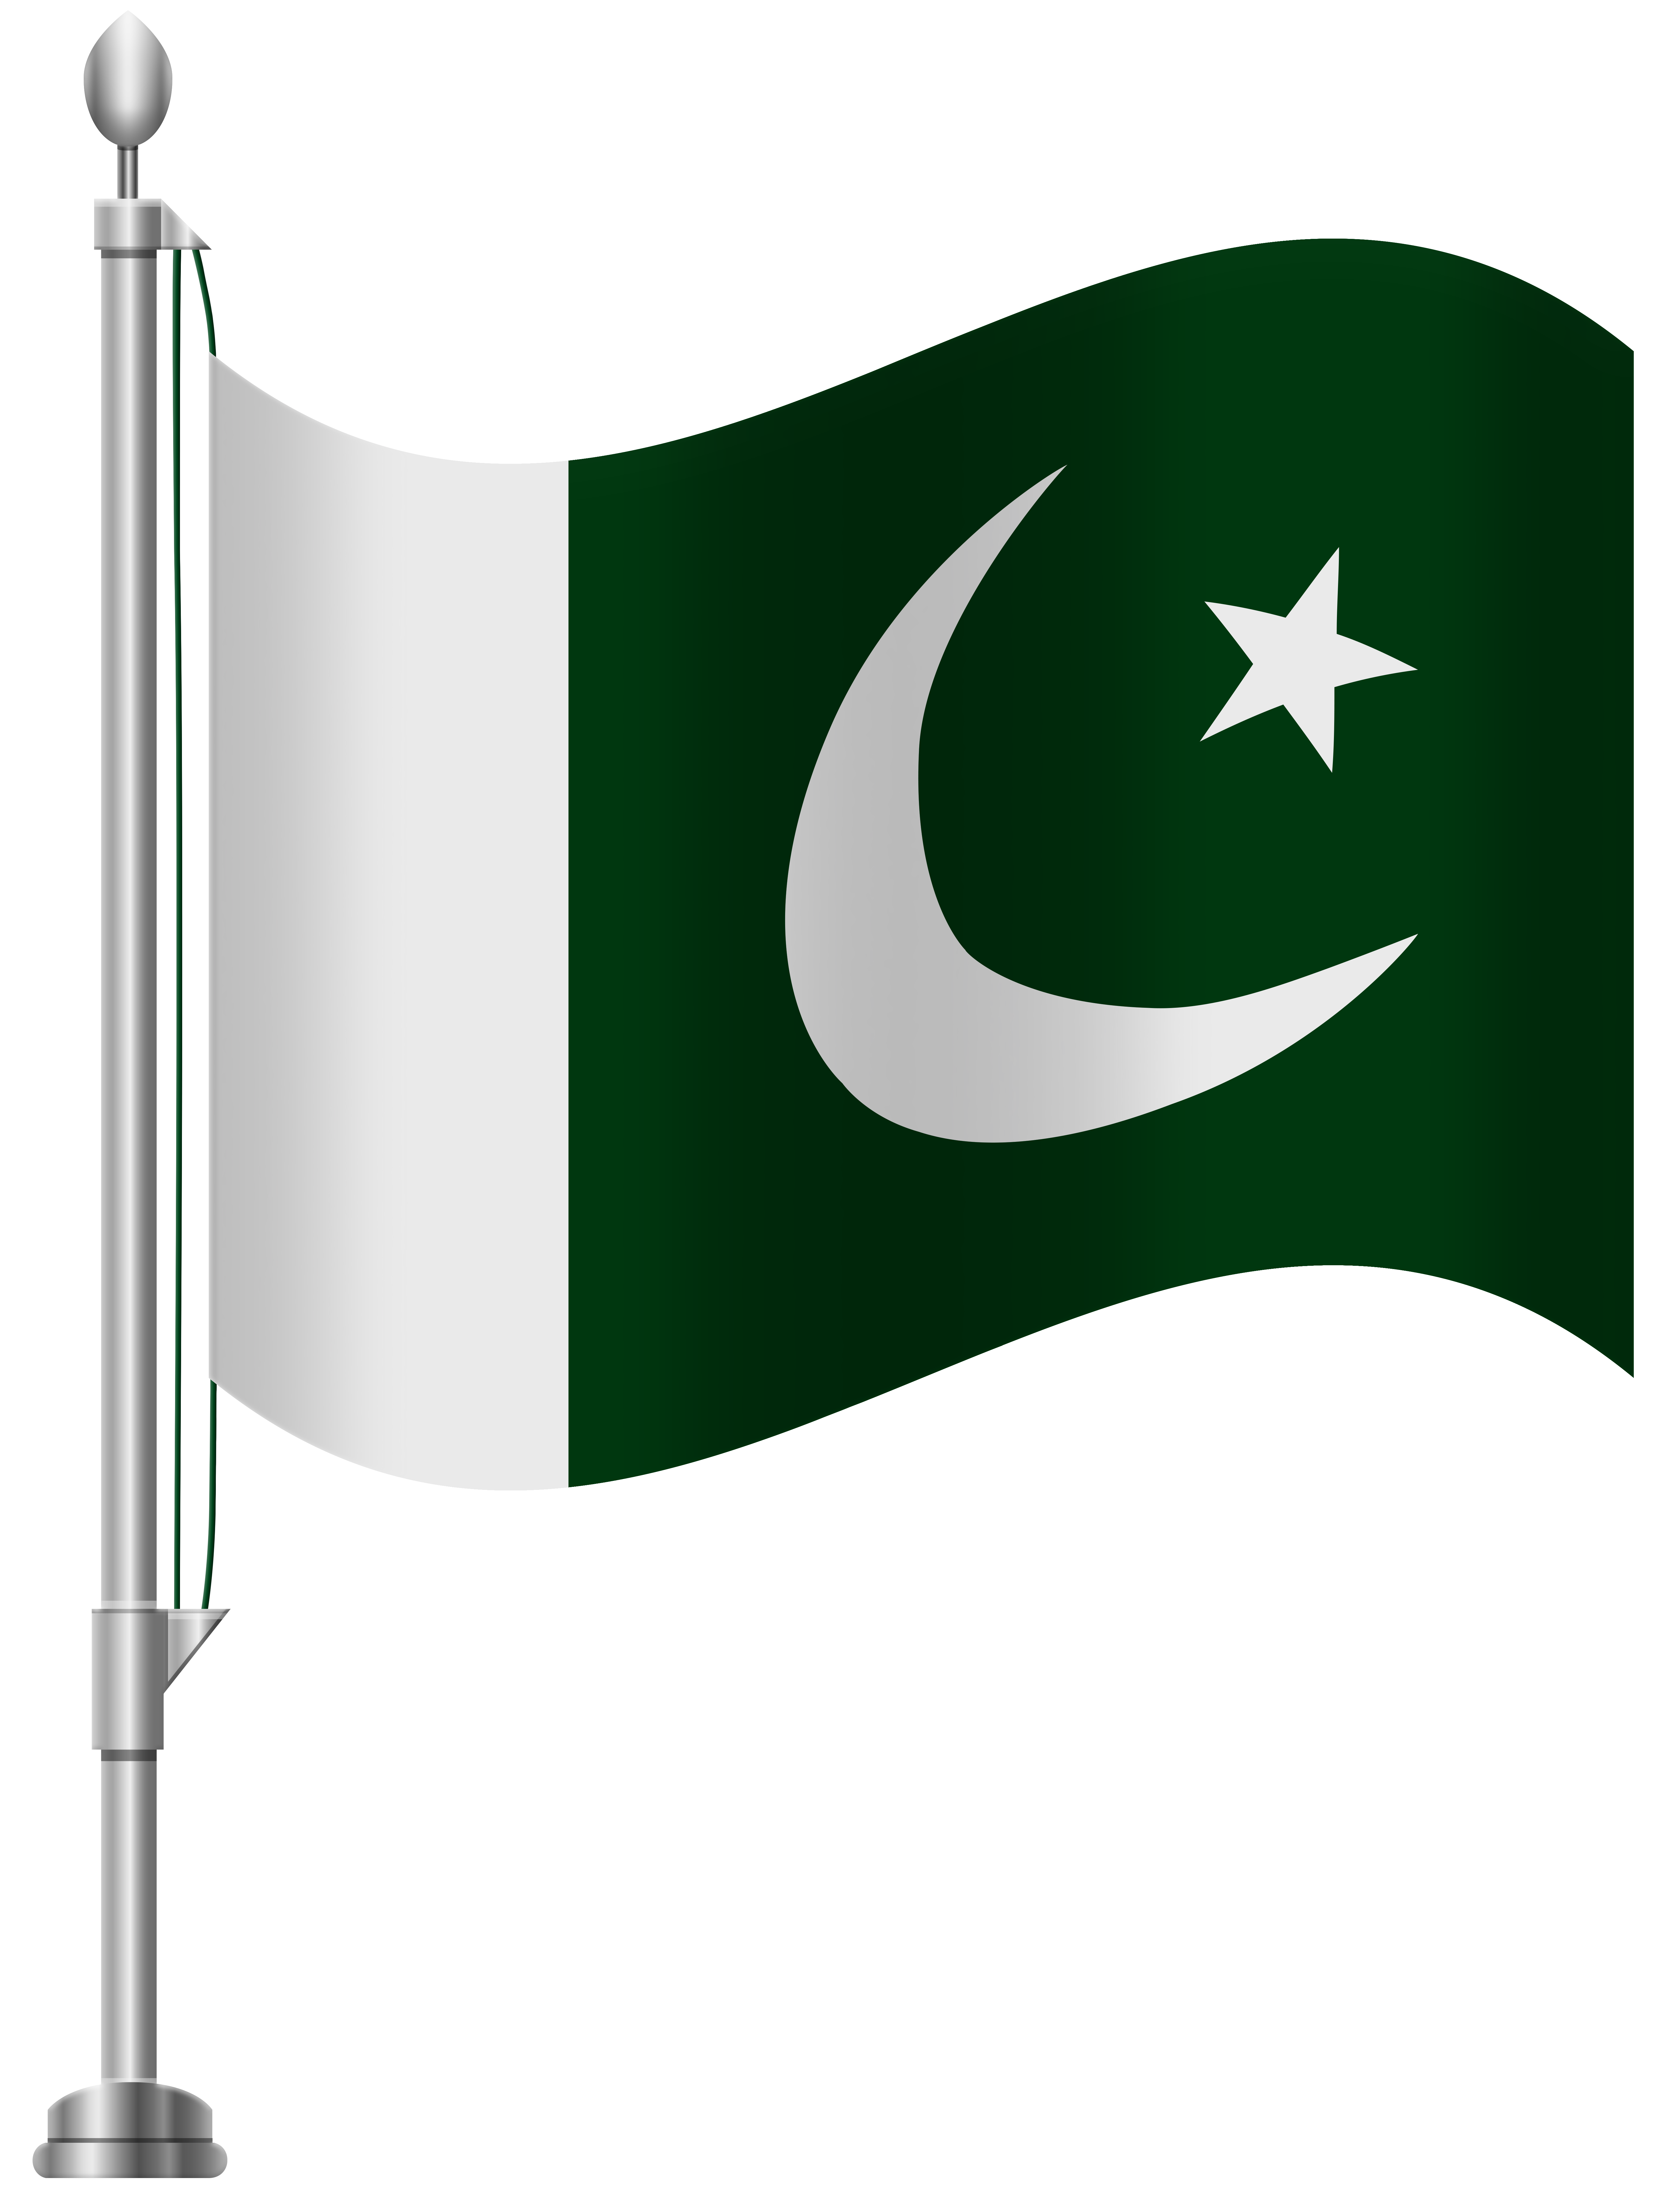 Pakistan flag clipart royalty free library Pakistan Flag PNG Clip Art - Best WEB Clipart royalty free library